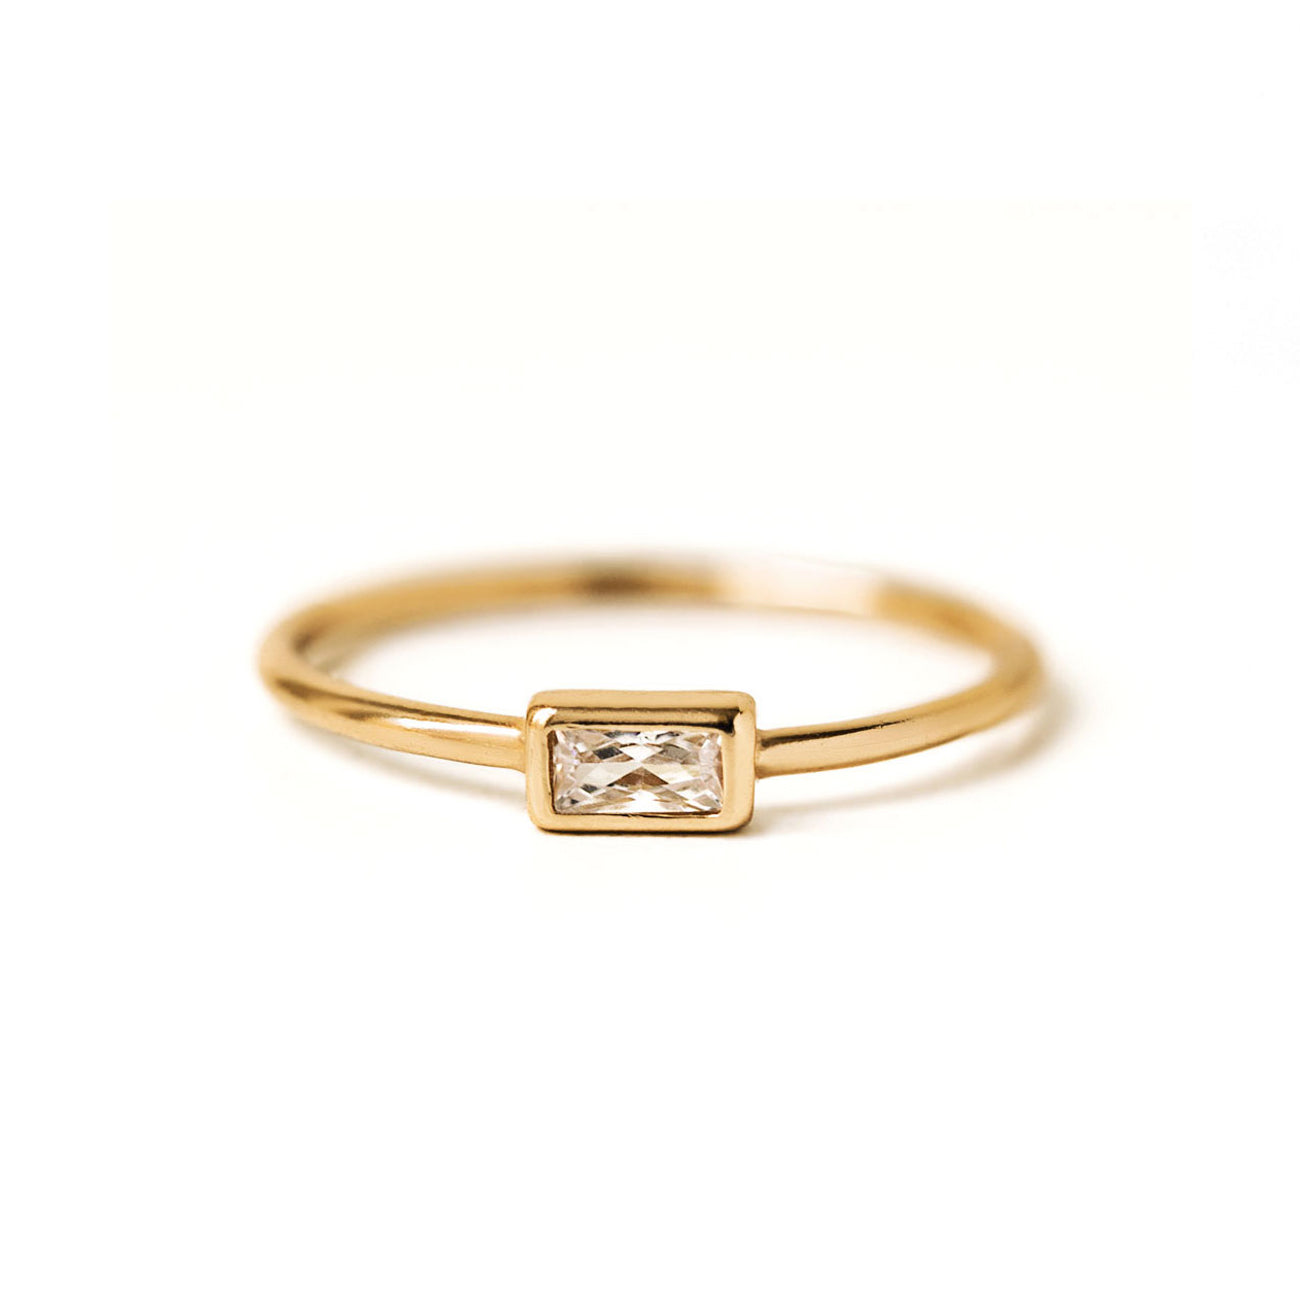 Tiny Gold Baguette Ring